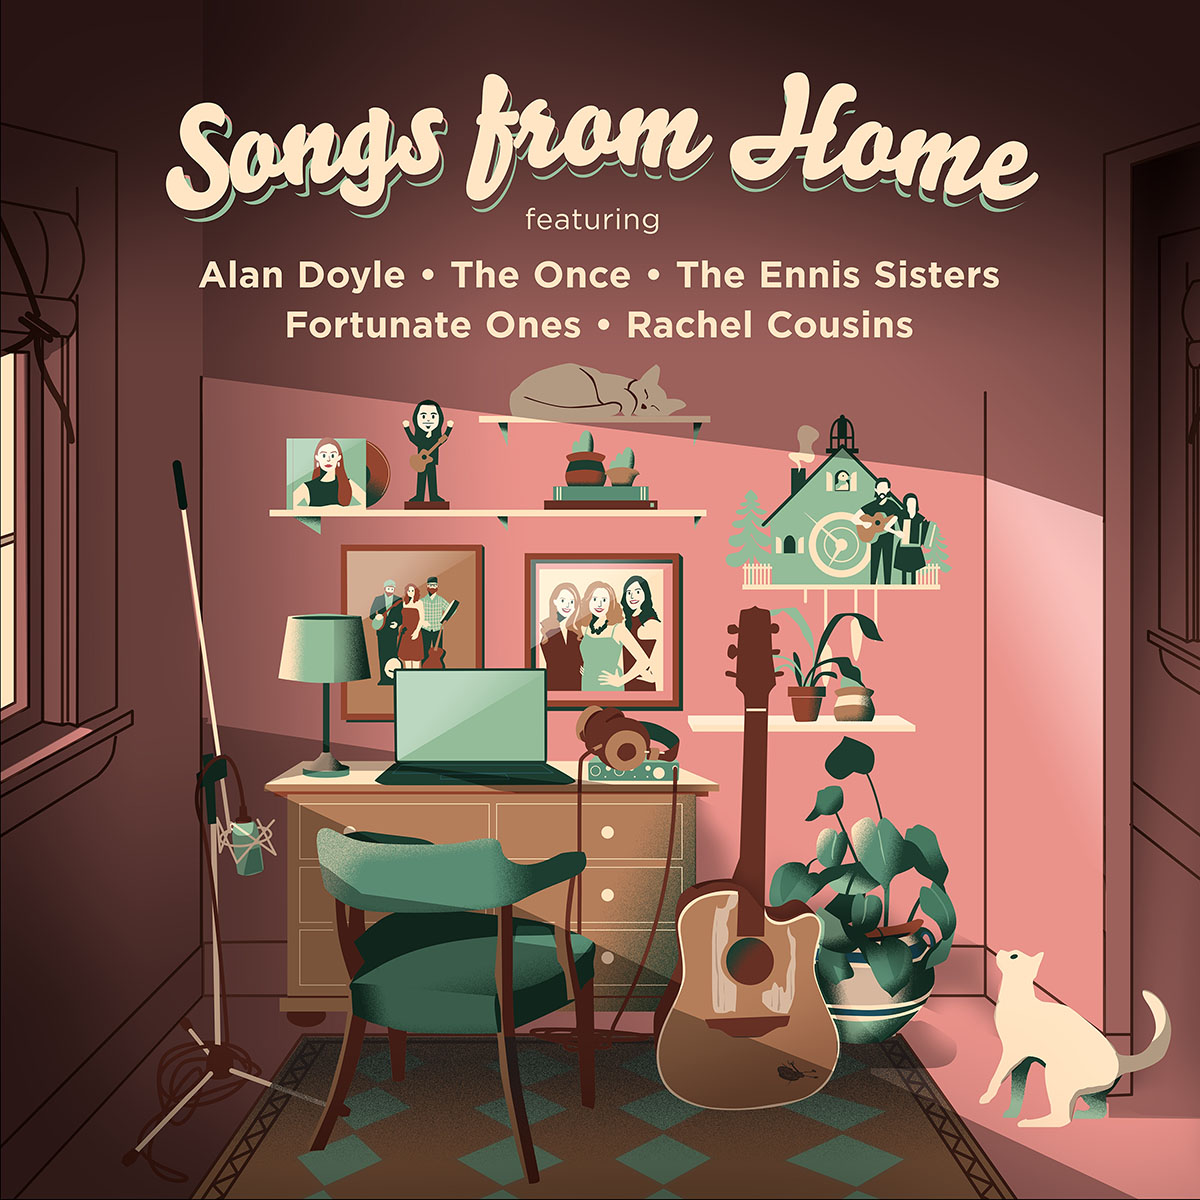 Alan Doyle Leads An All-Star Lineup Of Newfoundland Artists For New EP Songs From Home